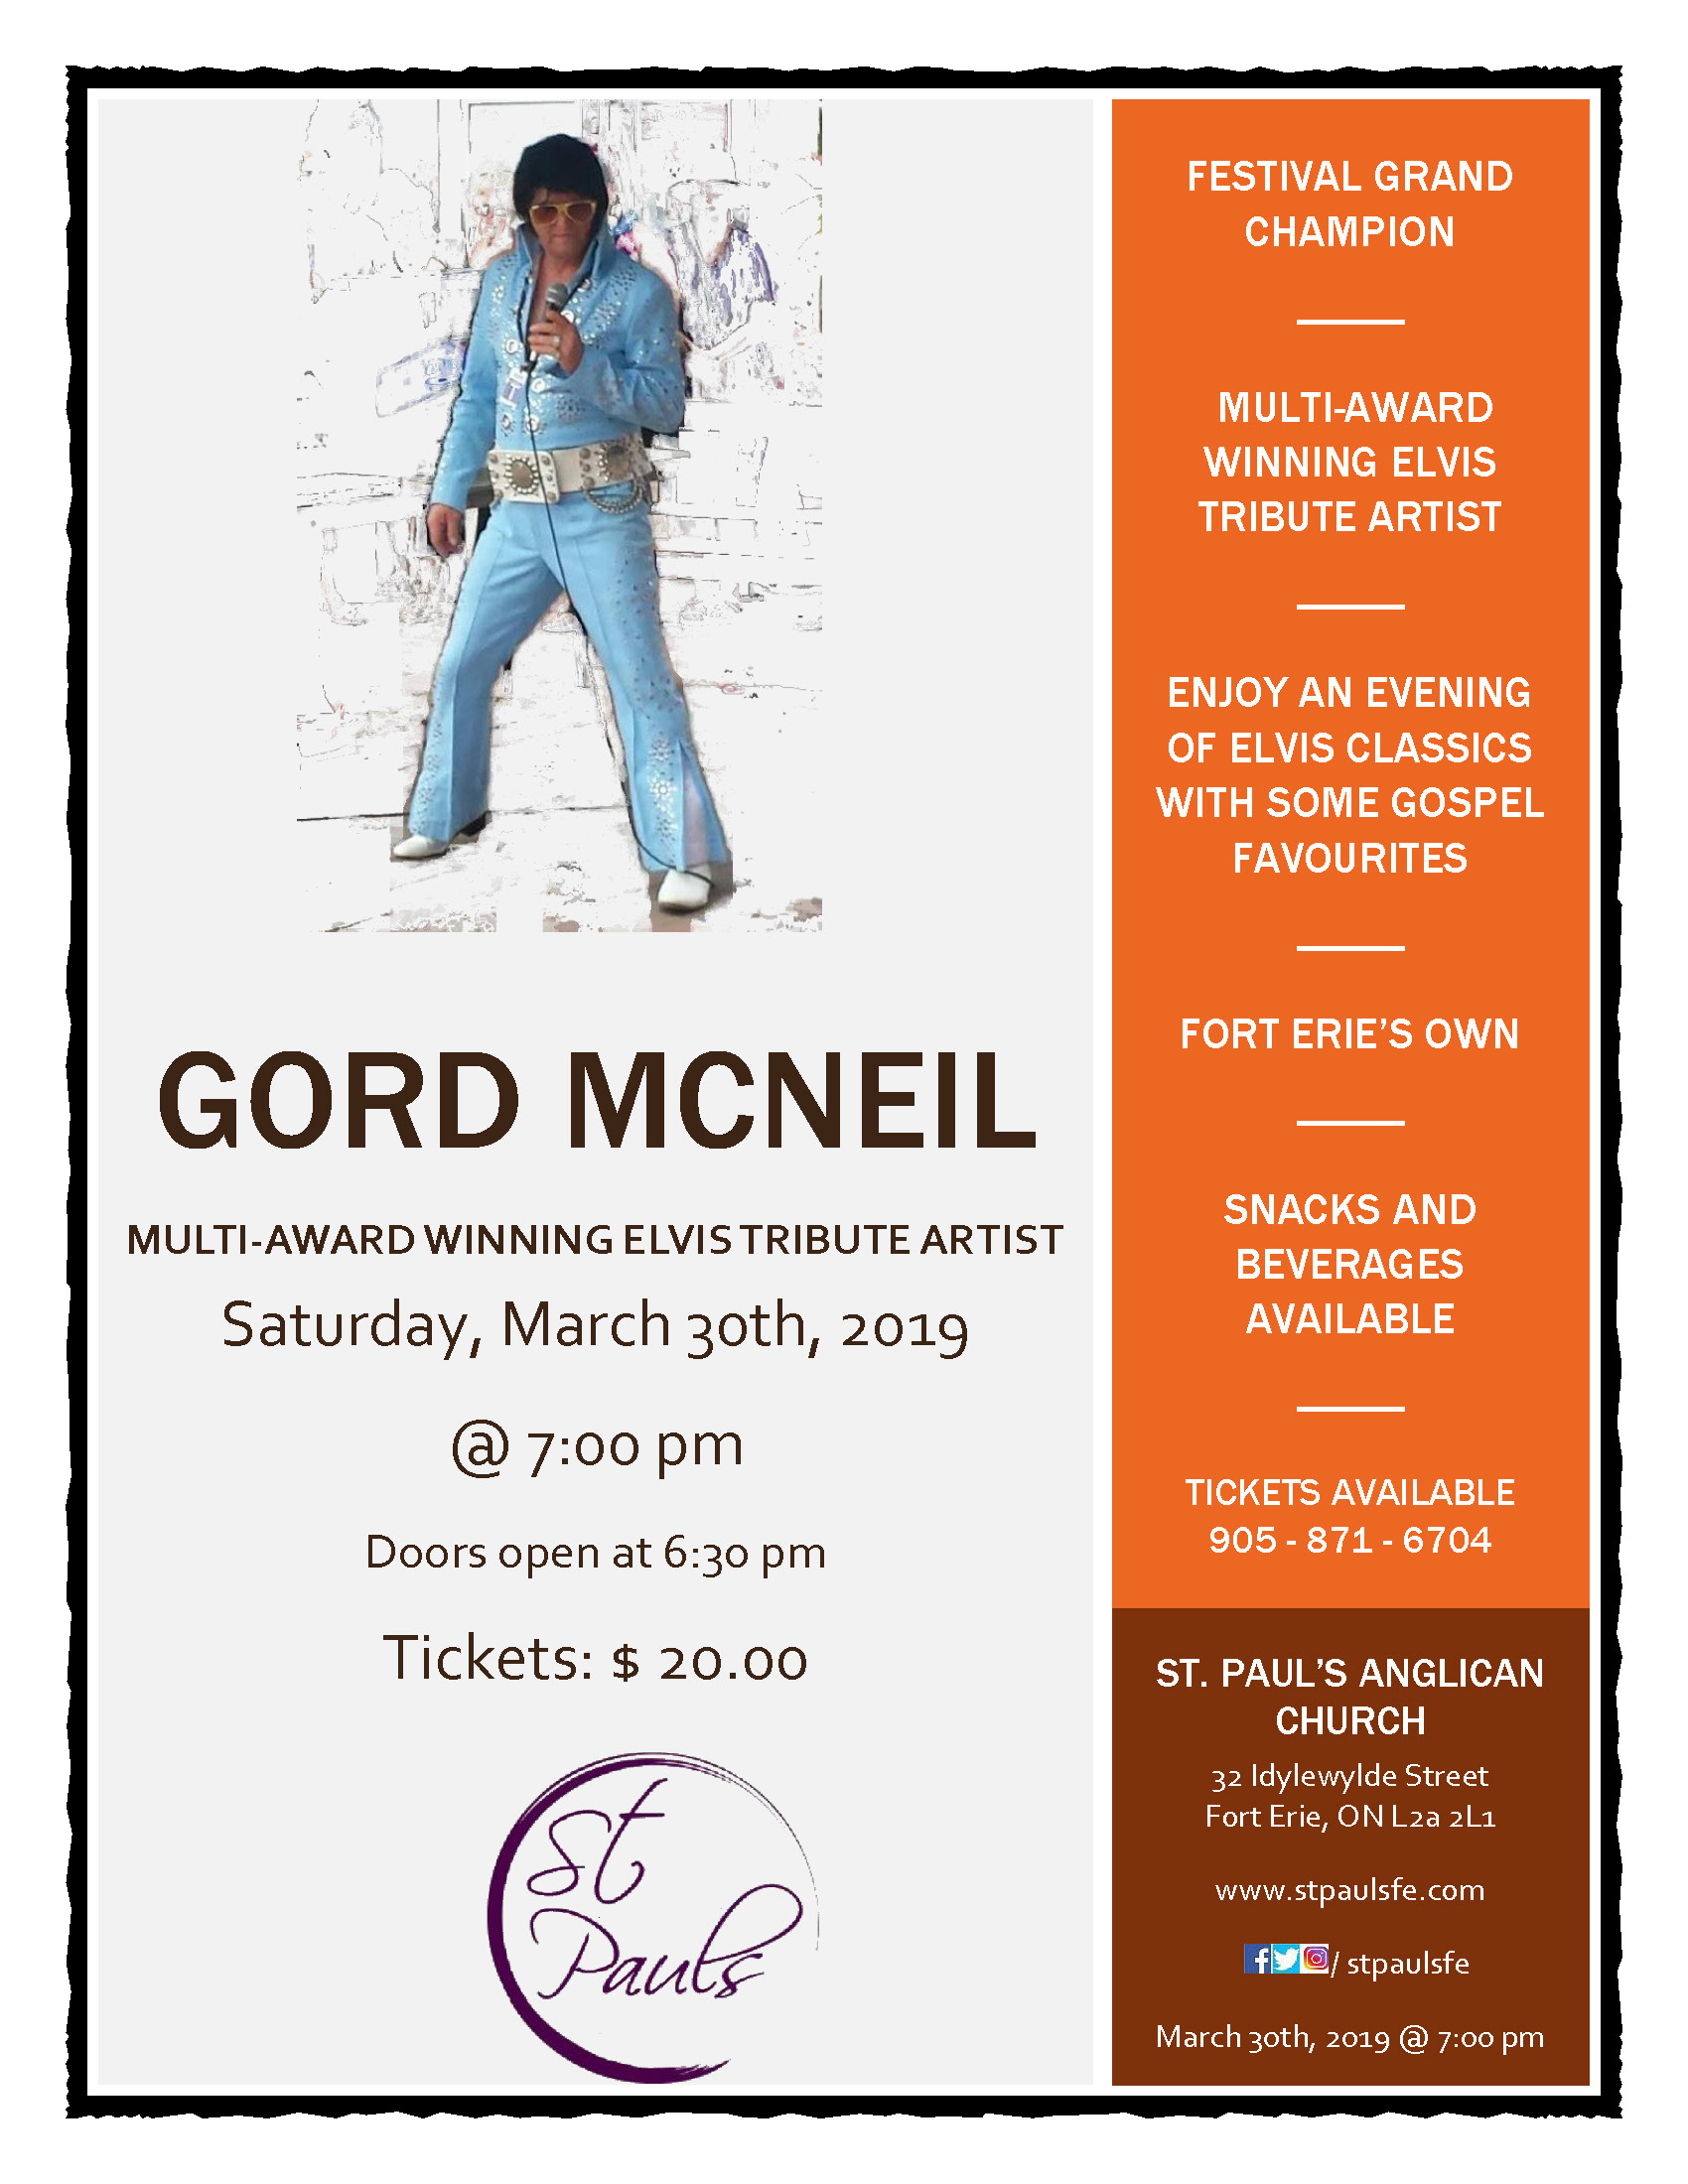 On Saturday, March 30, Gord McNeil - multi-award winning Elvis tribute artist will return to St. Paul's Anglican Church. Tickets went quickly at his last appearance, so don't wait - book yours today.